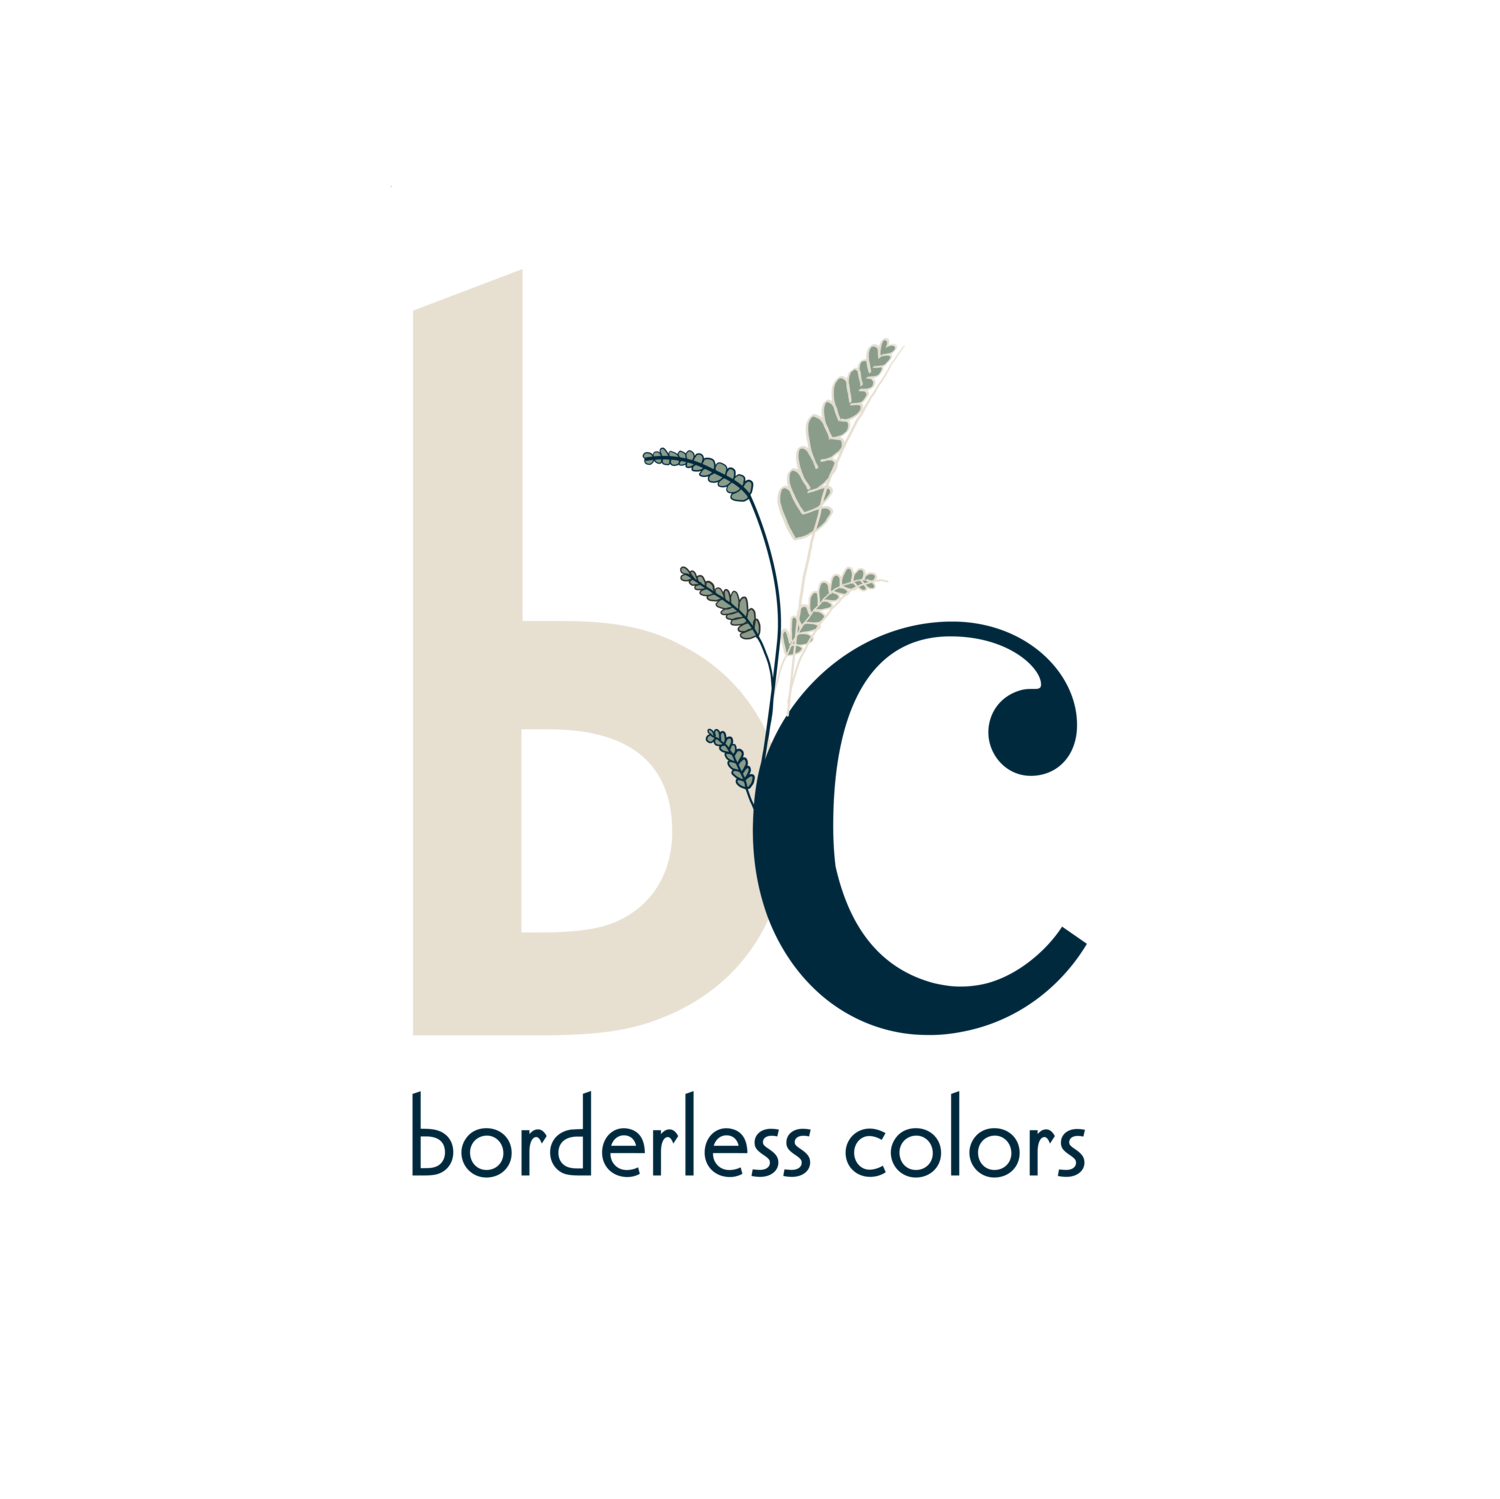 Borderless Colors